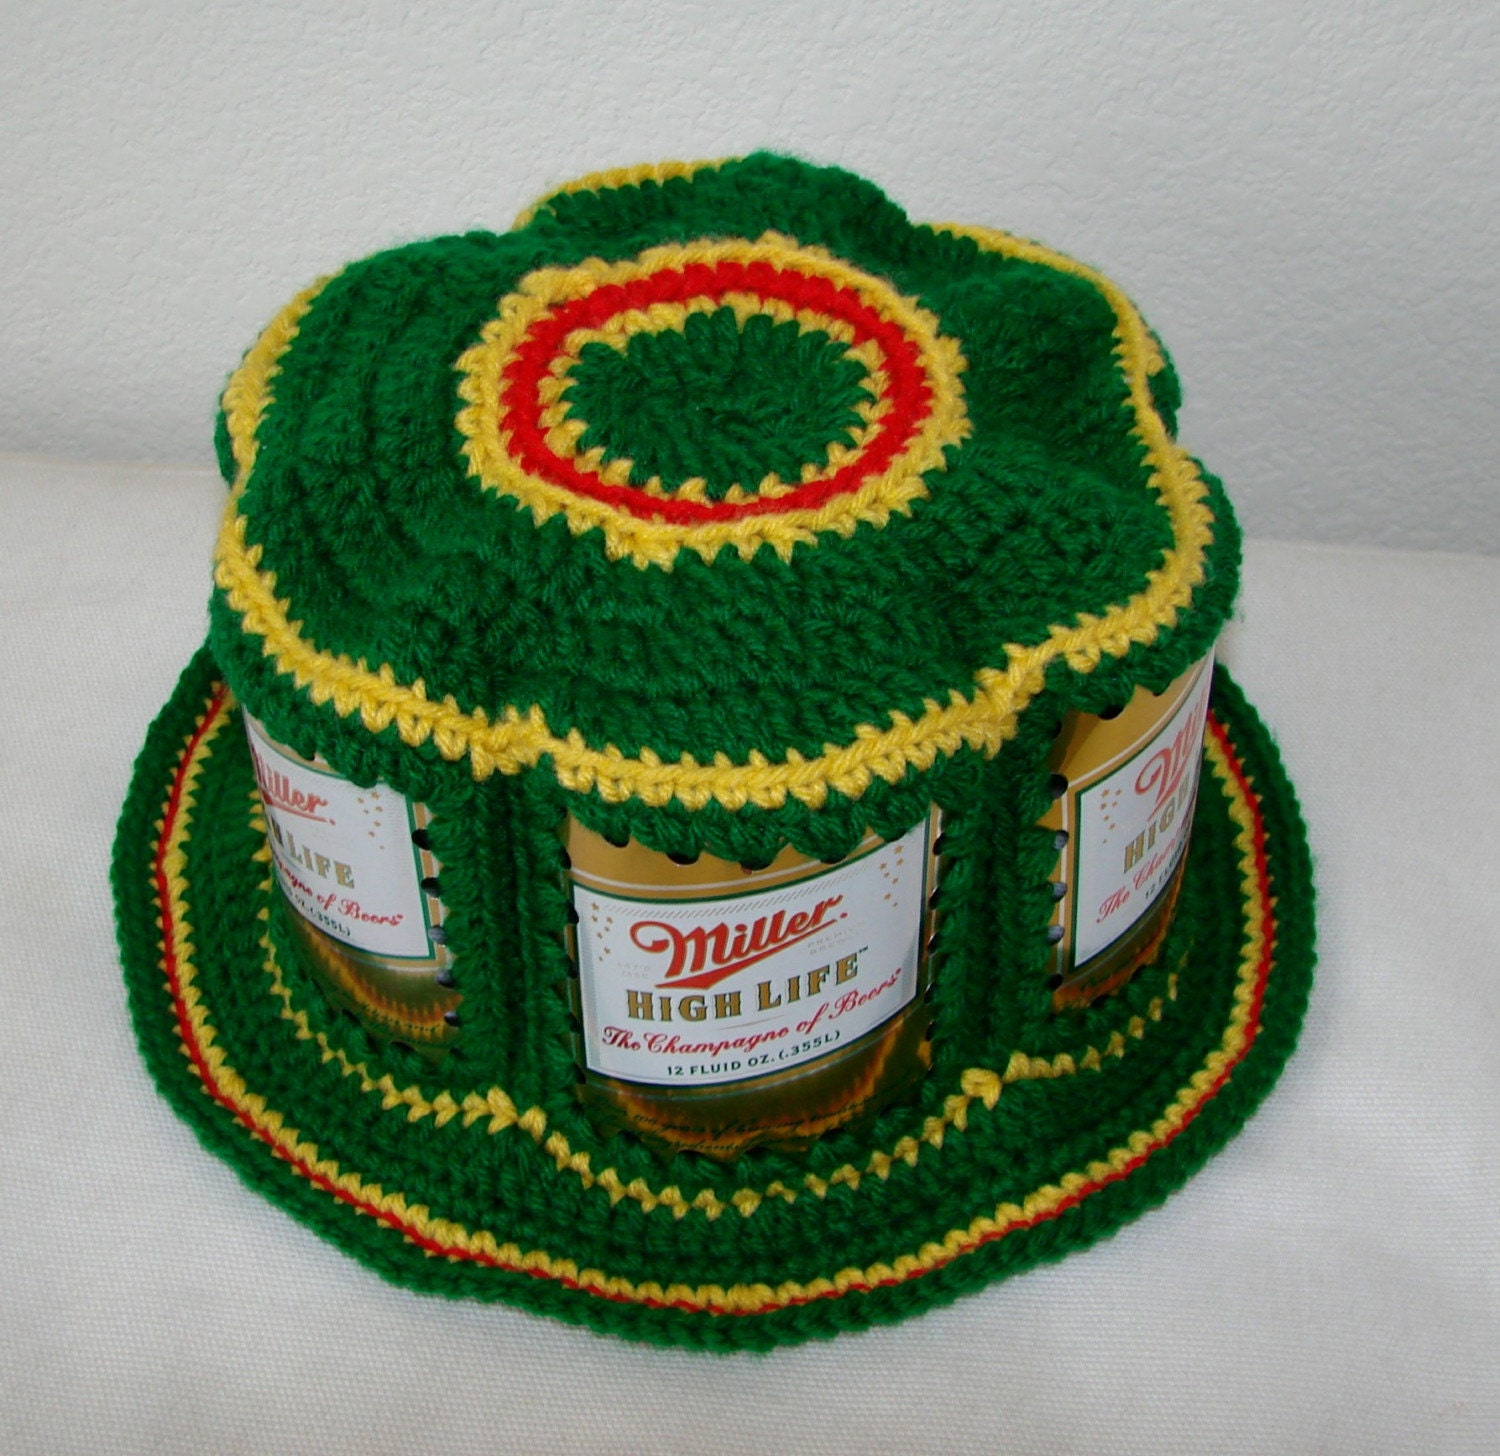 Crochet Beer Can Cowboy Hat Pattern : BEER CAN CROCHETED HAT PATTERN - Crochet ? Learn How to ...